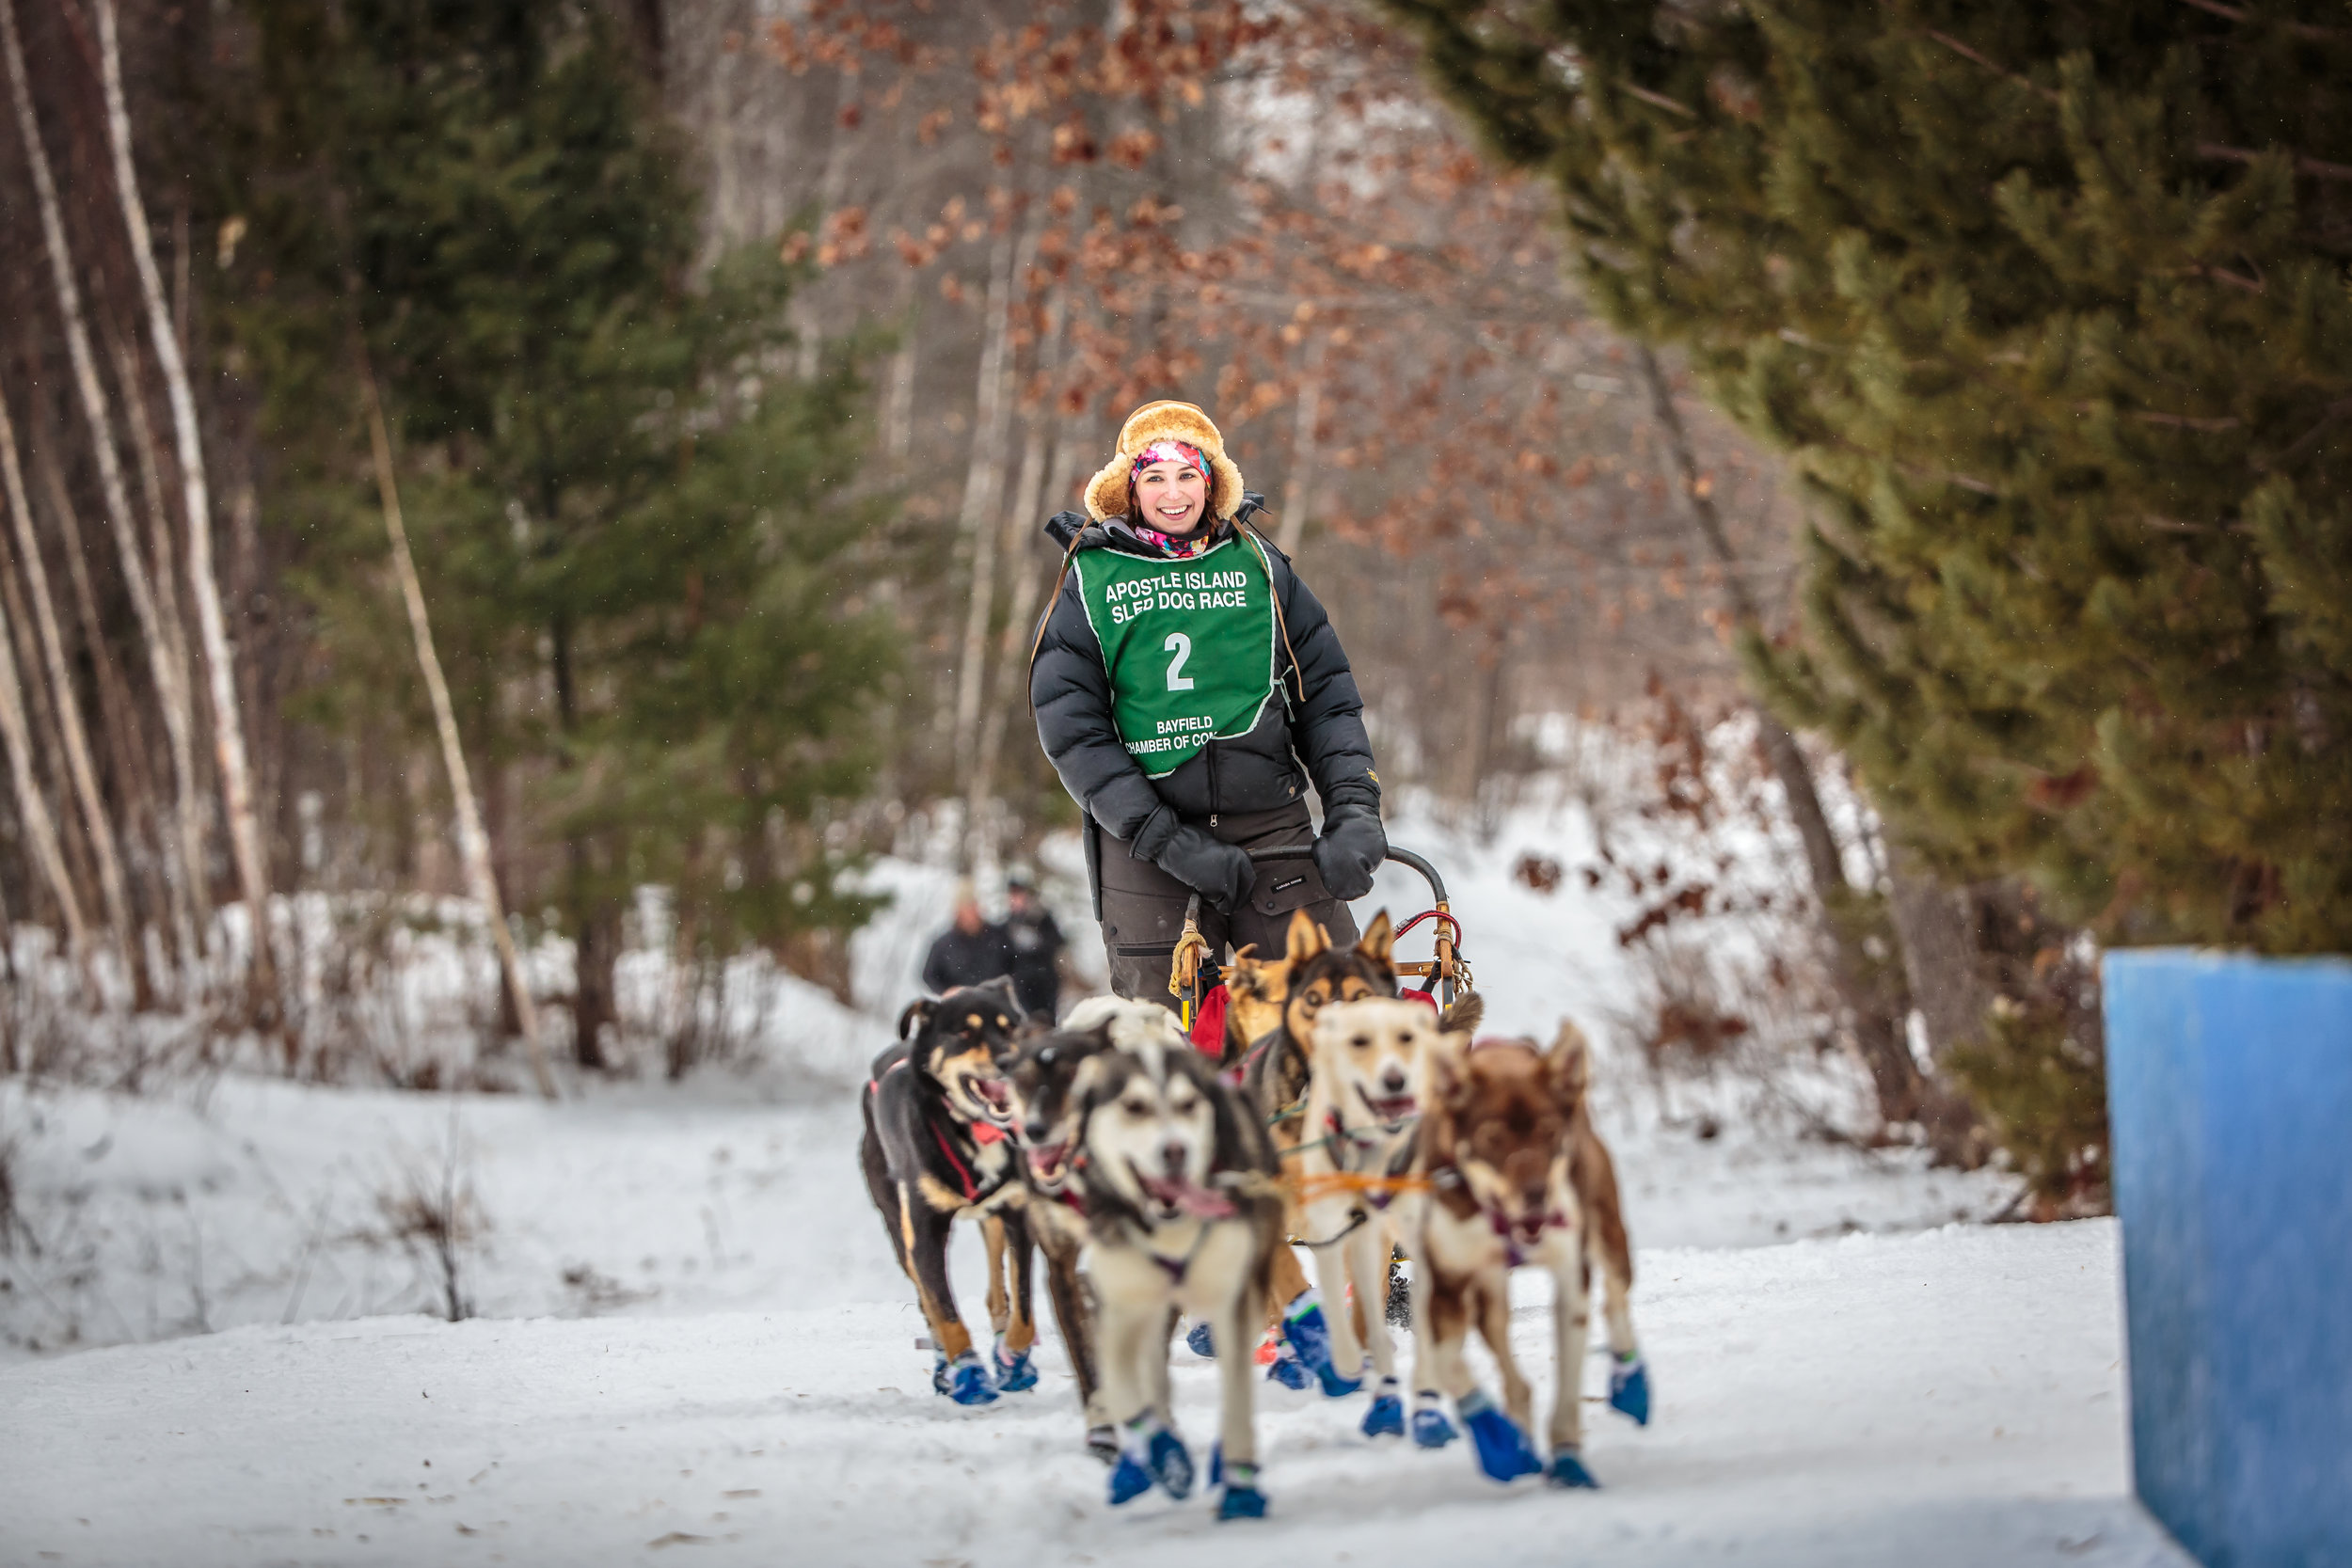 BlairBraverman_H_AISDR_credit James Netz.jpg